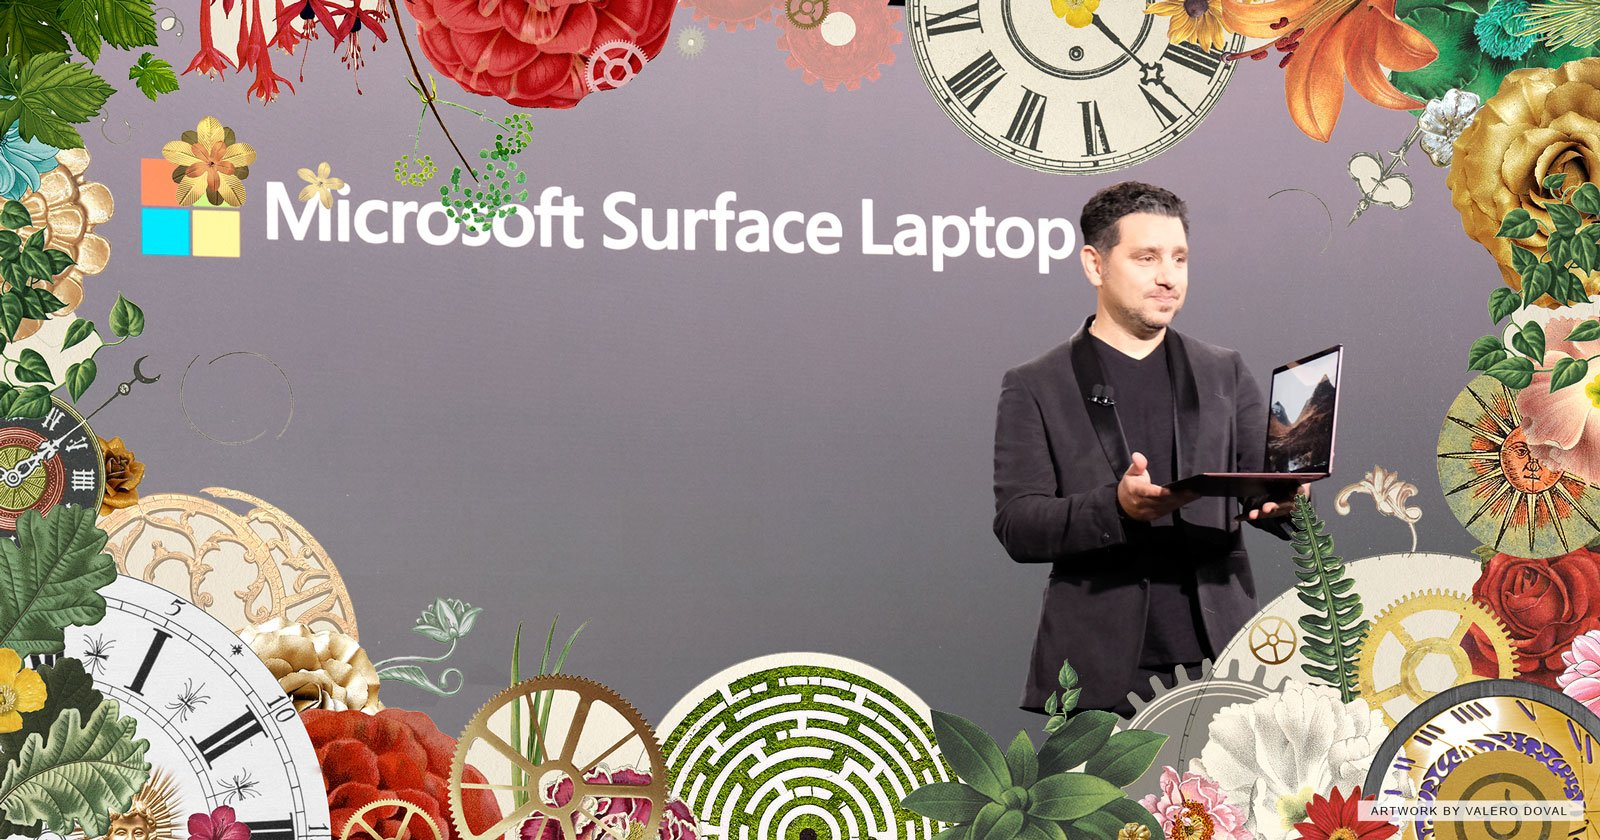 Microsoft Surface Laptop S-Town